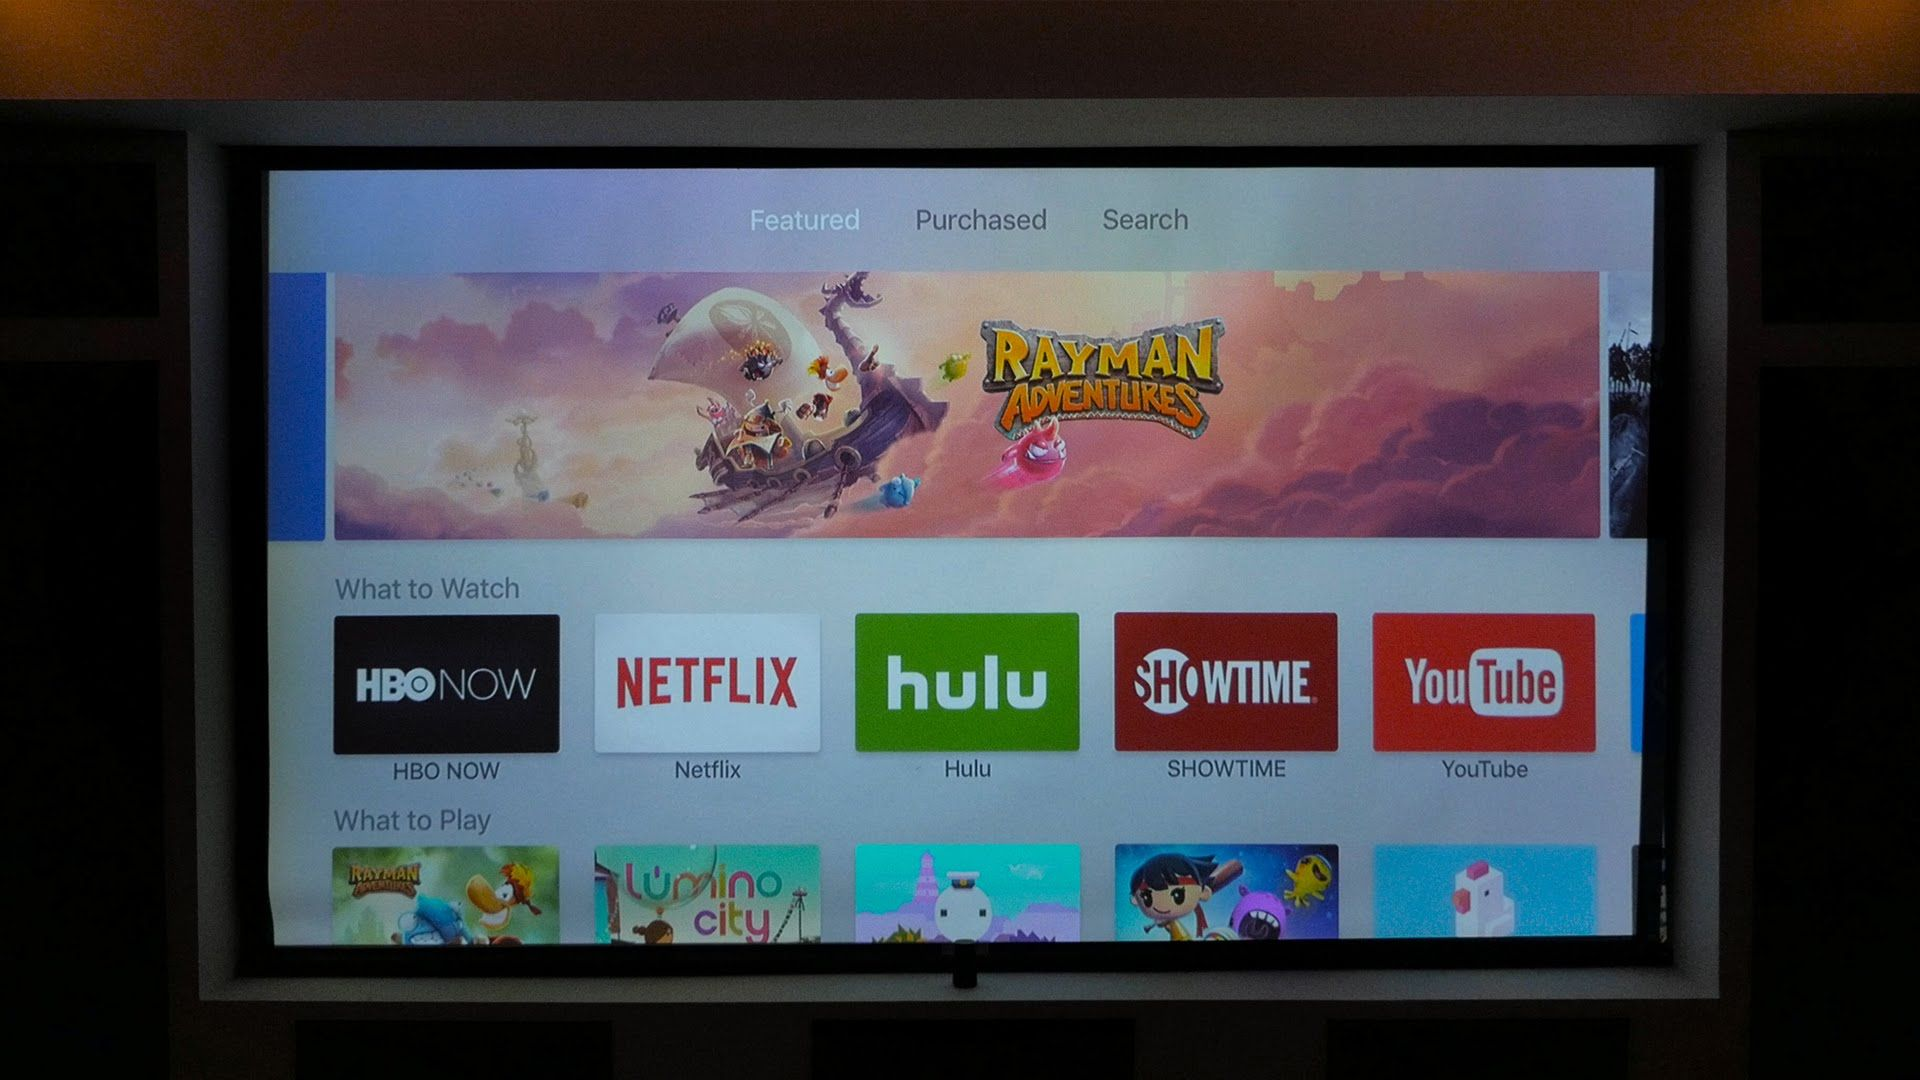 How Do You Get To App Store On Apple Tv